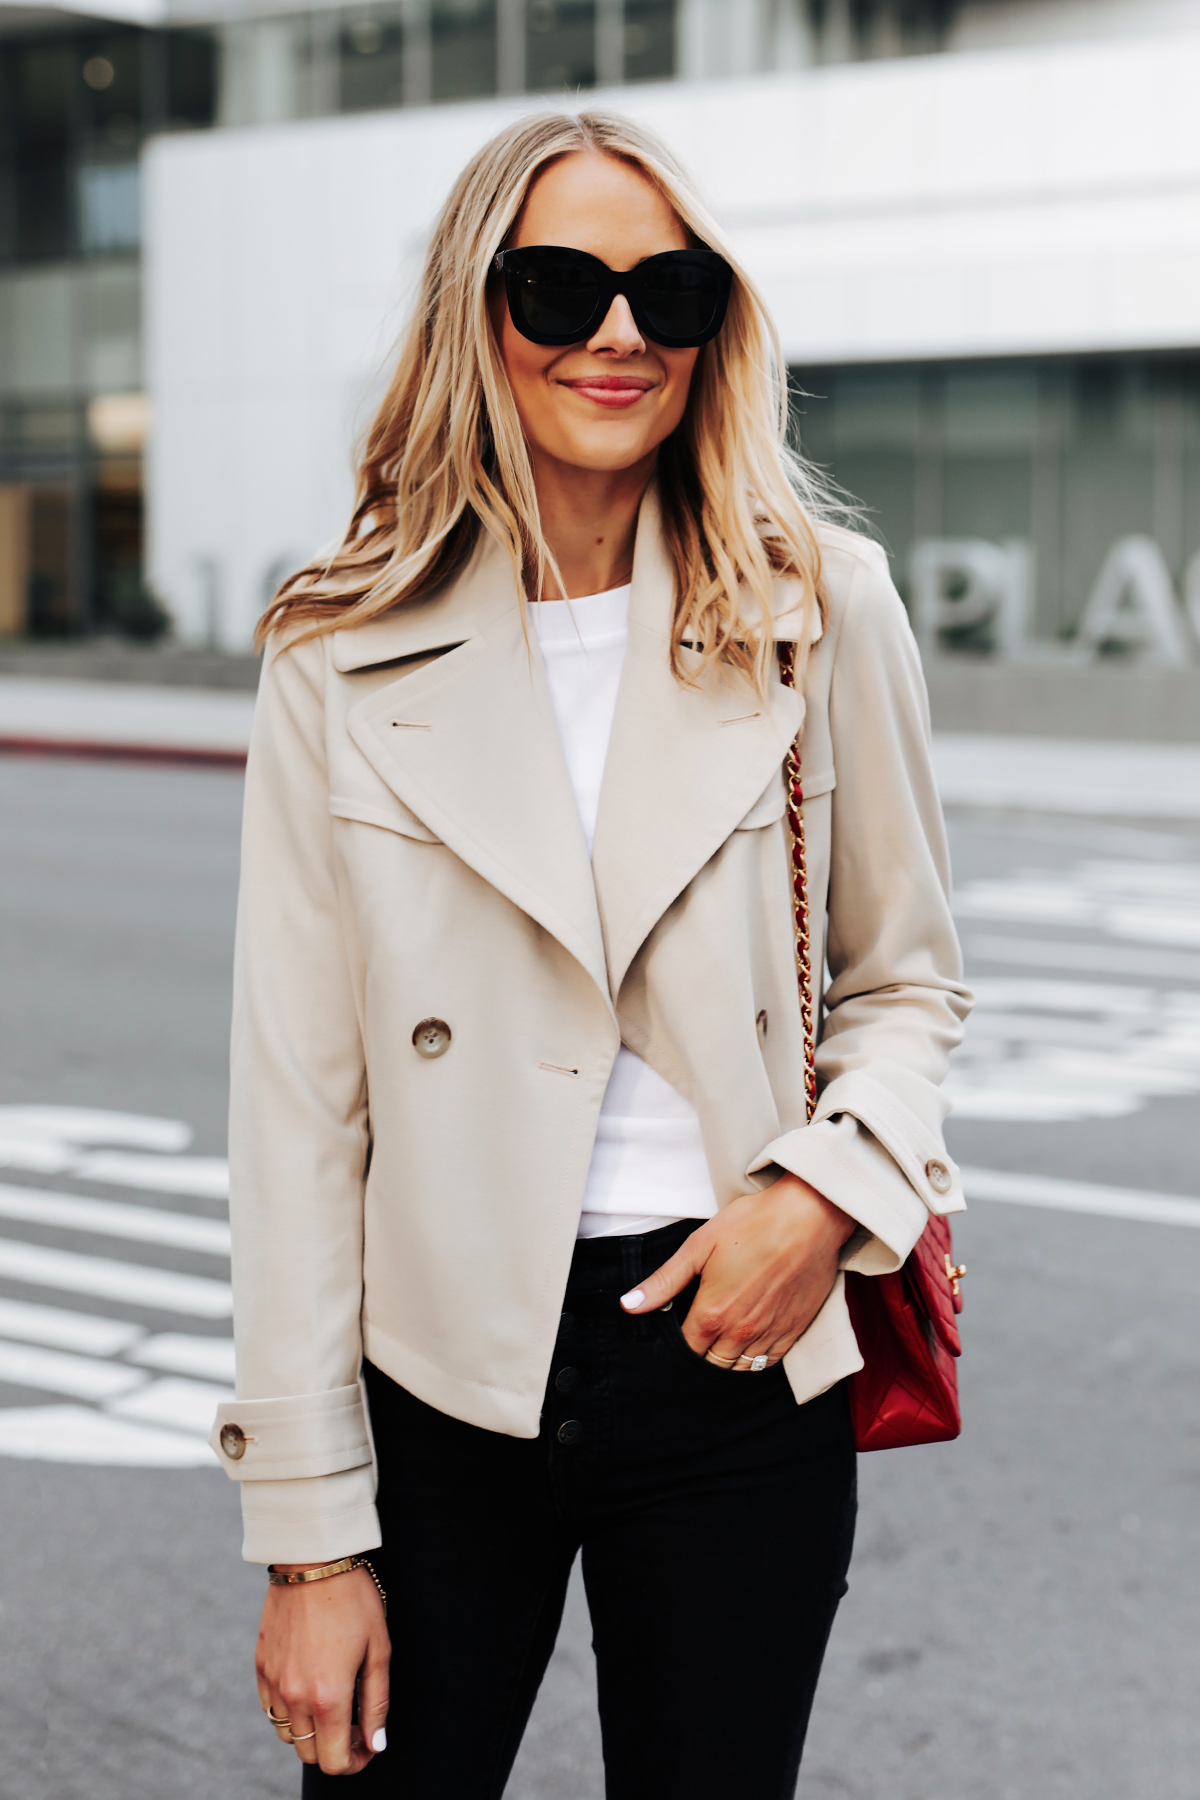 Blonde Woman Wearing Ann Taylor Short Trench Coat White Tshirt Black Jeans Red Handbag Fashion Jackson San Diego Fashion Blogger Street Style